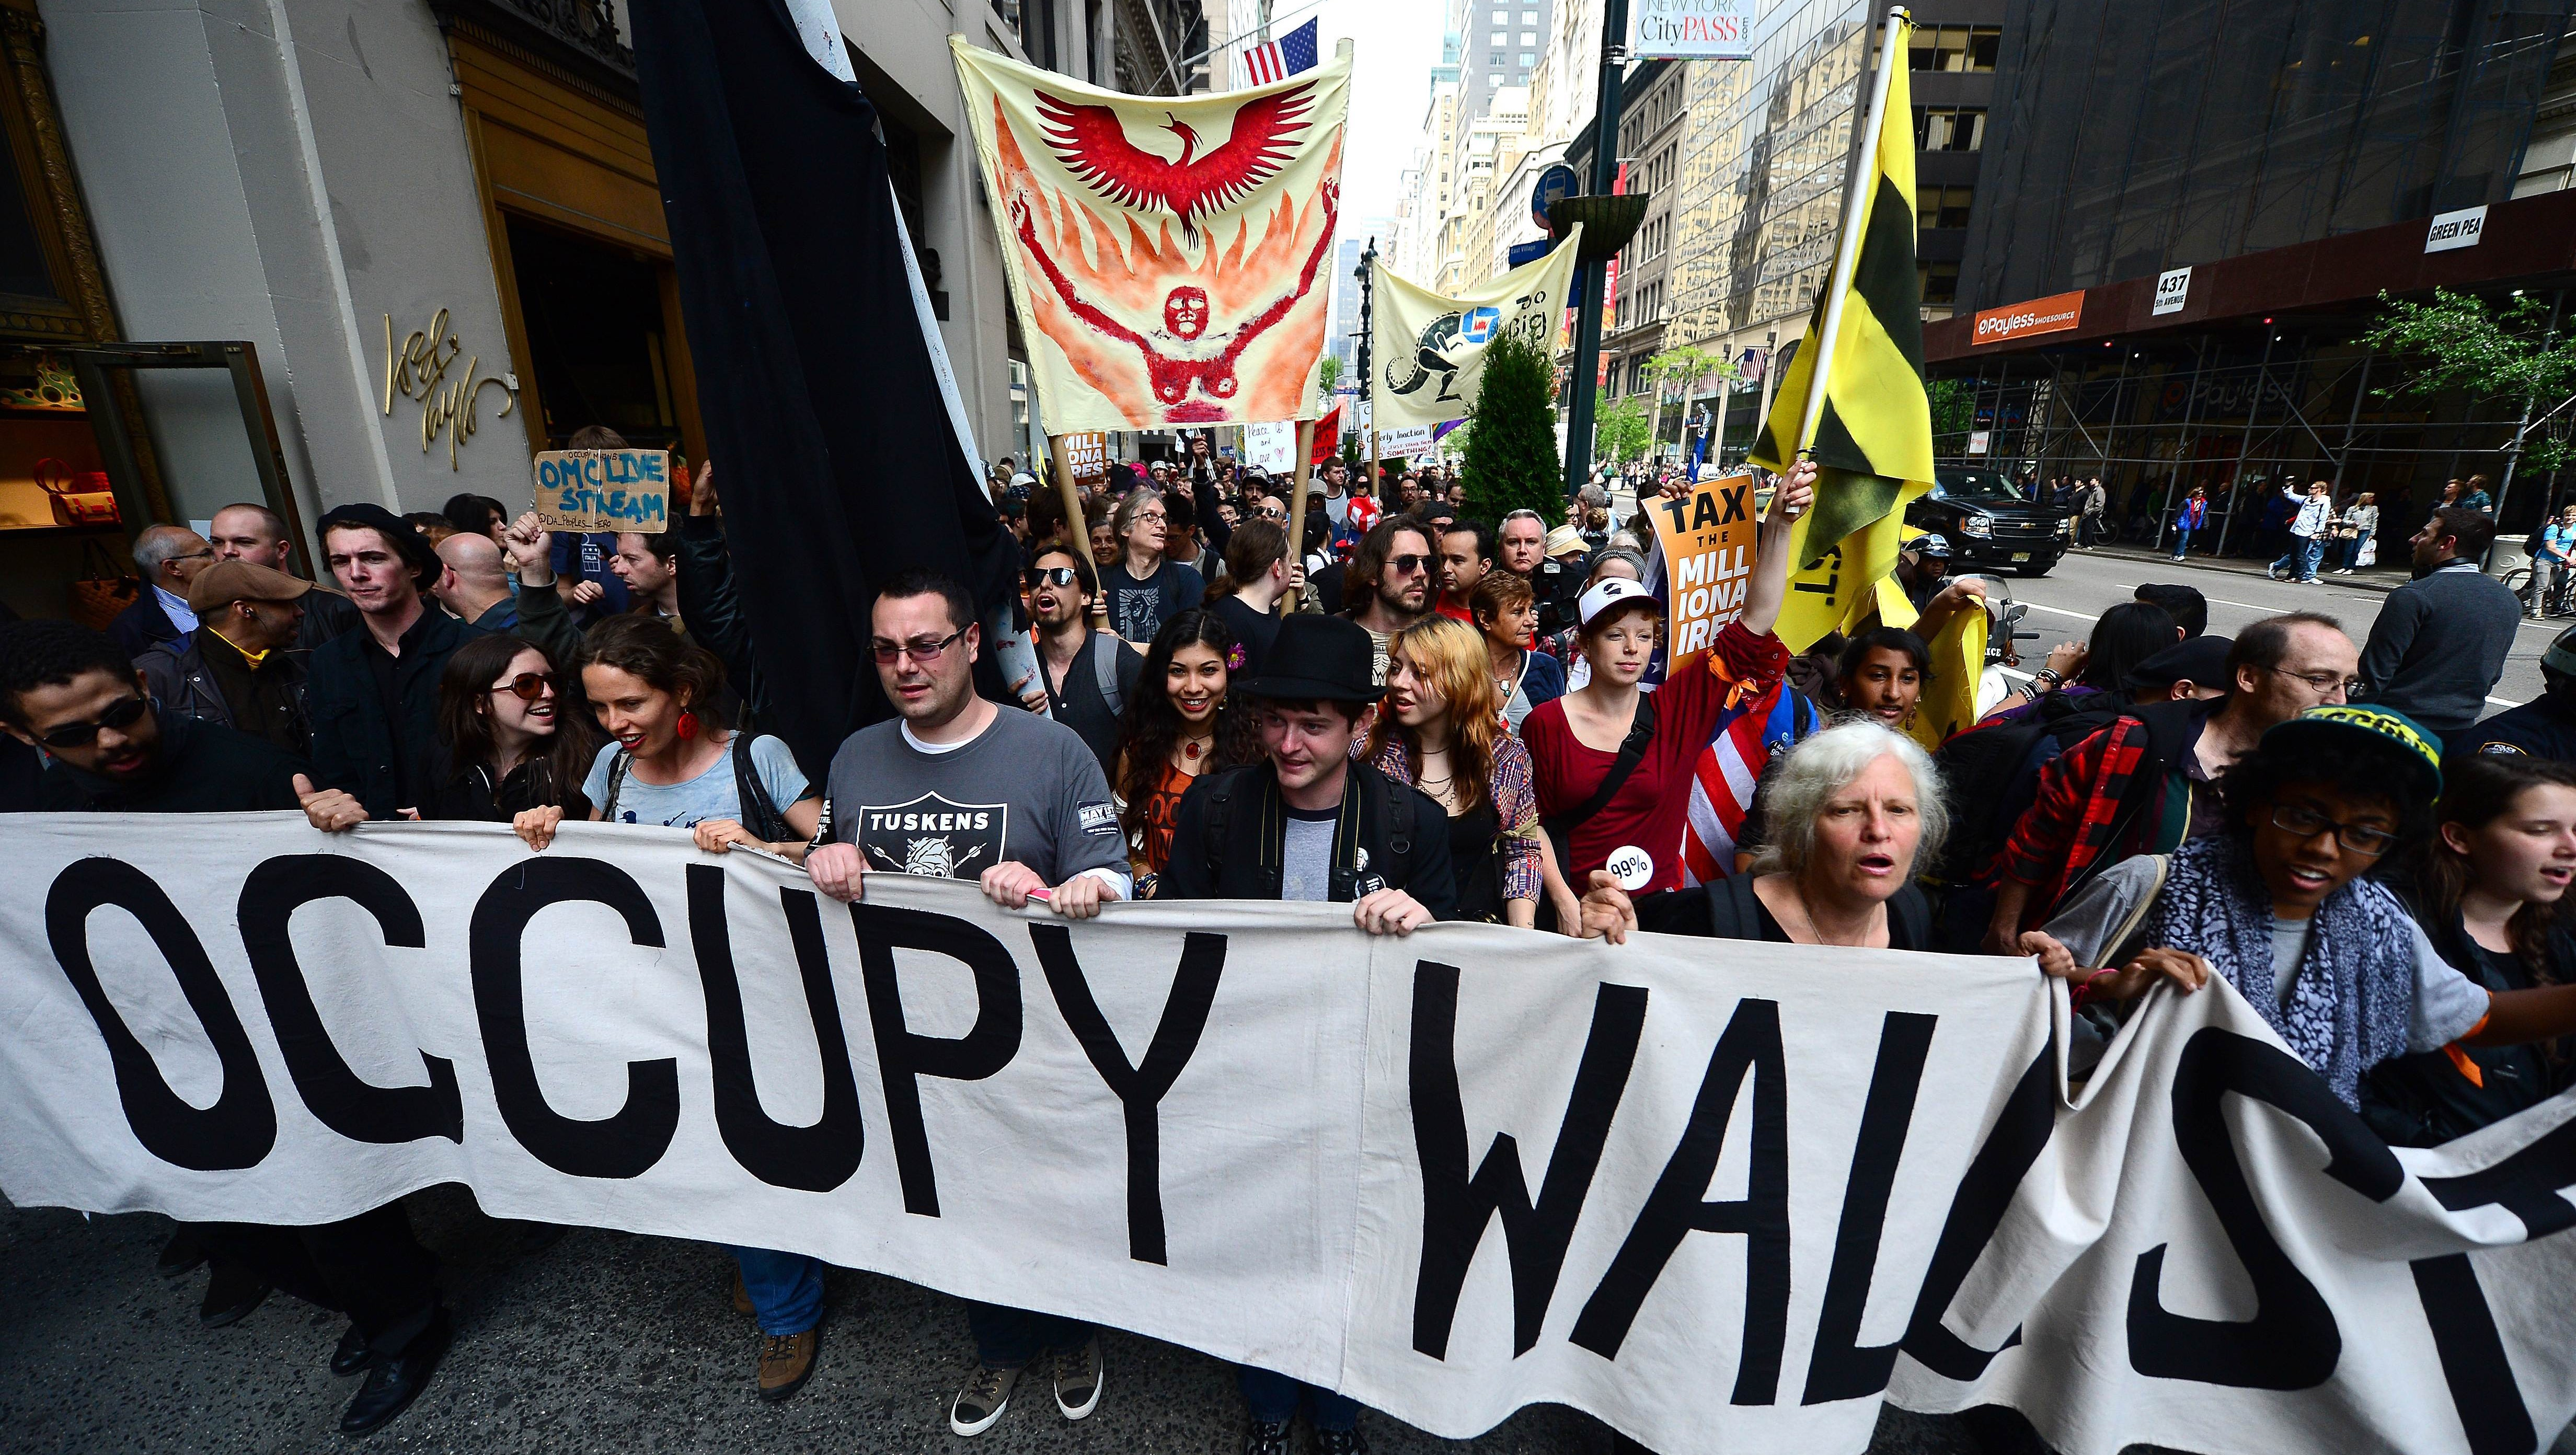 Protest for Socialism - Occupy Wall Sytreet